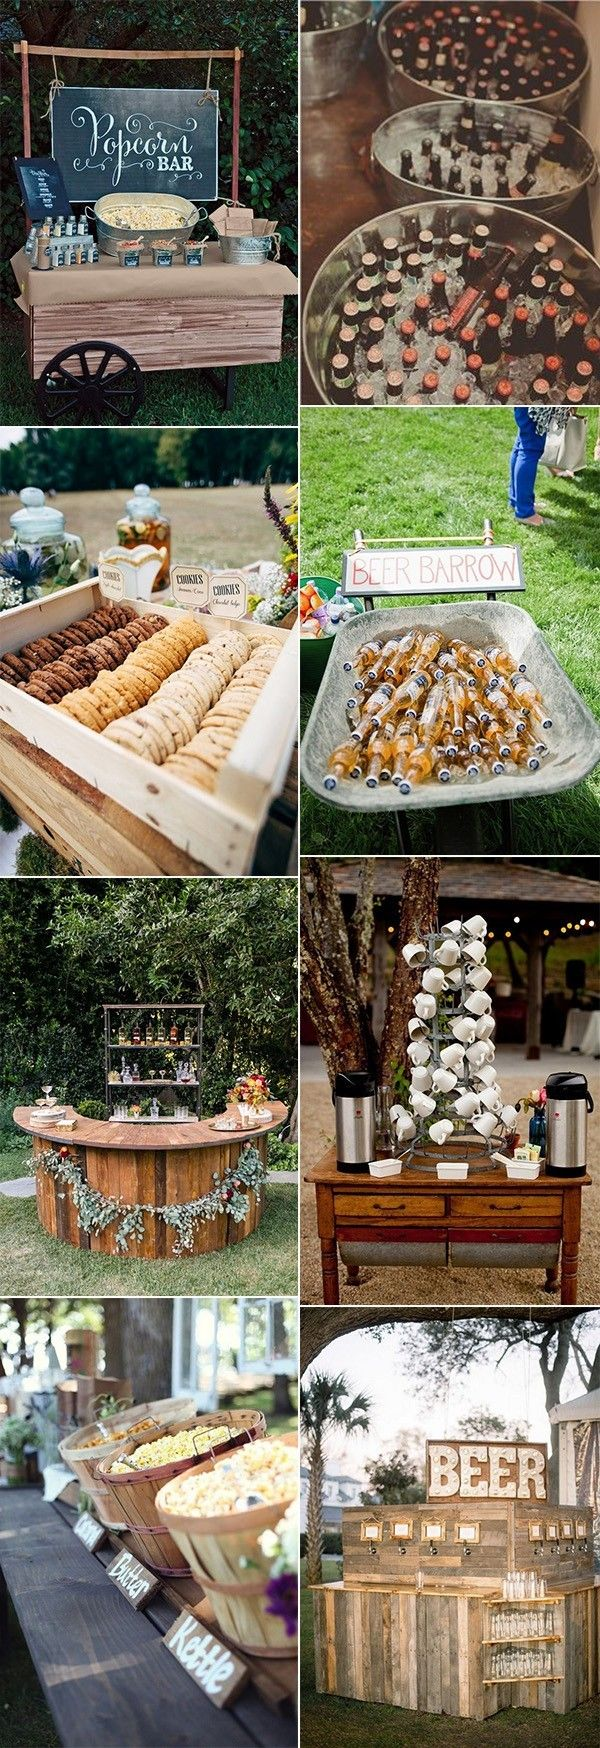 Outdoor garden wedding decoration ideas   Brilliant Outdoor Wedding Decoration Ideas for  Trends  The